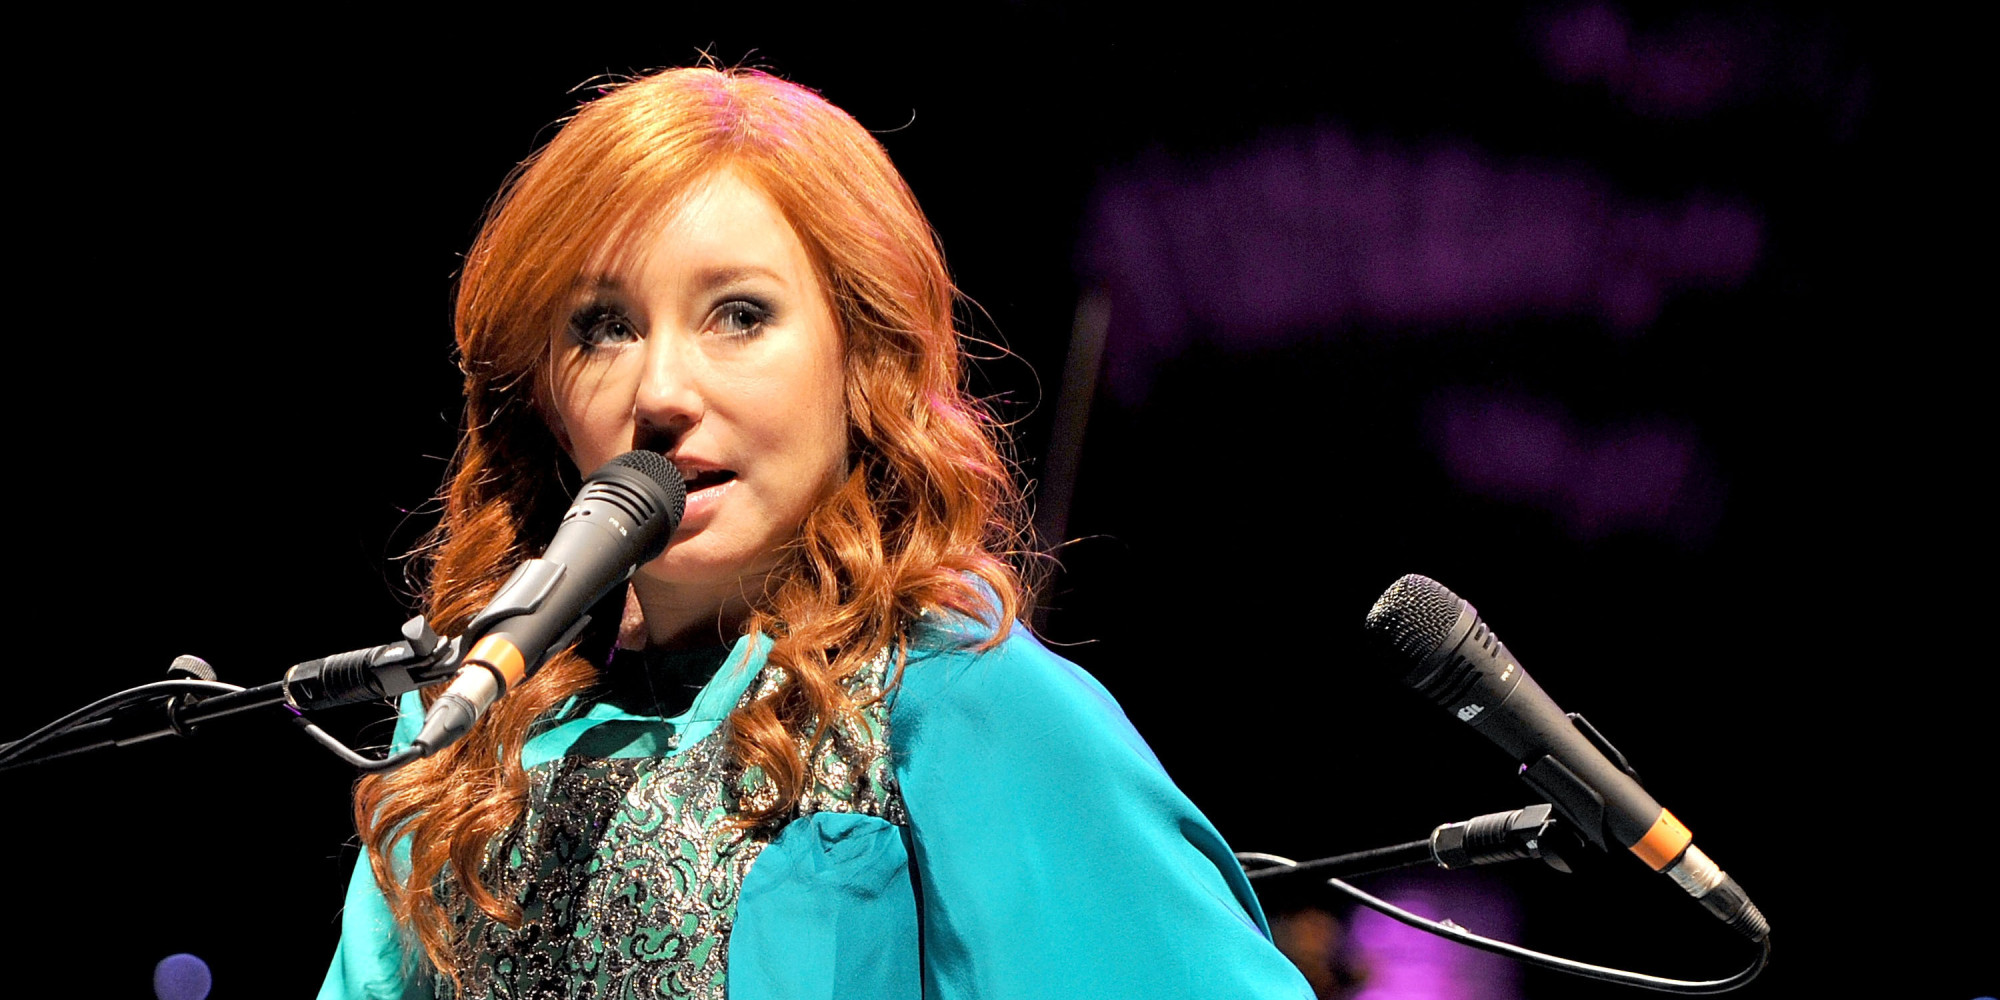 ... Words Of Advice Tori Amos' Daughter Gave Her About Aging | HuffPost